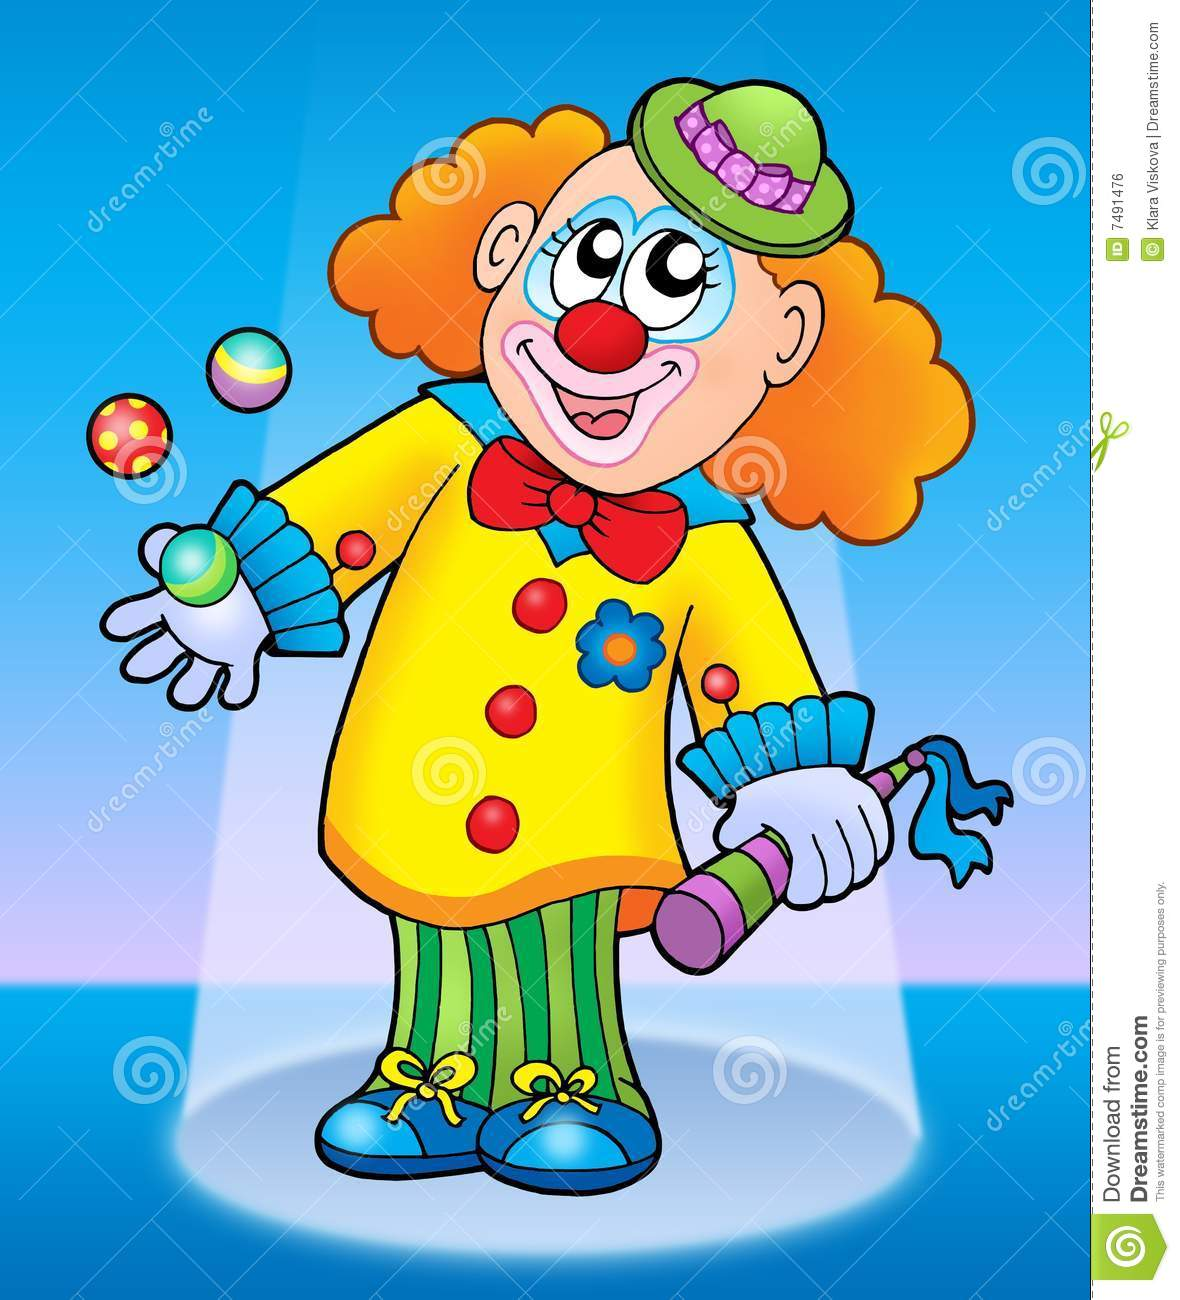 Cute Happy Clown Royalty Free Stock Image - Image: 7491476